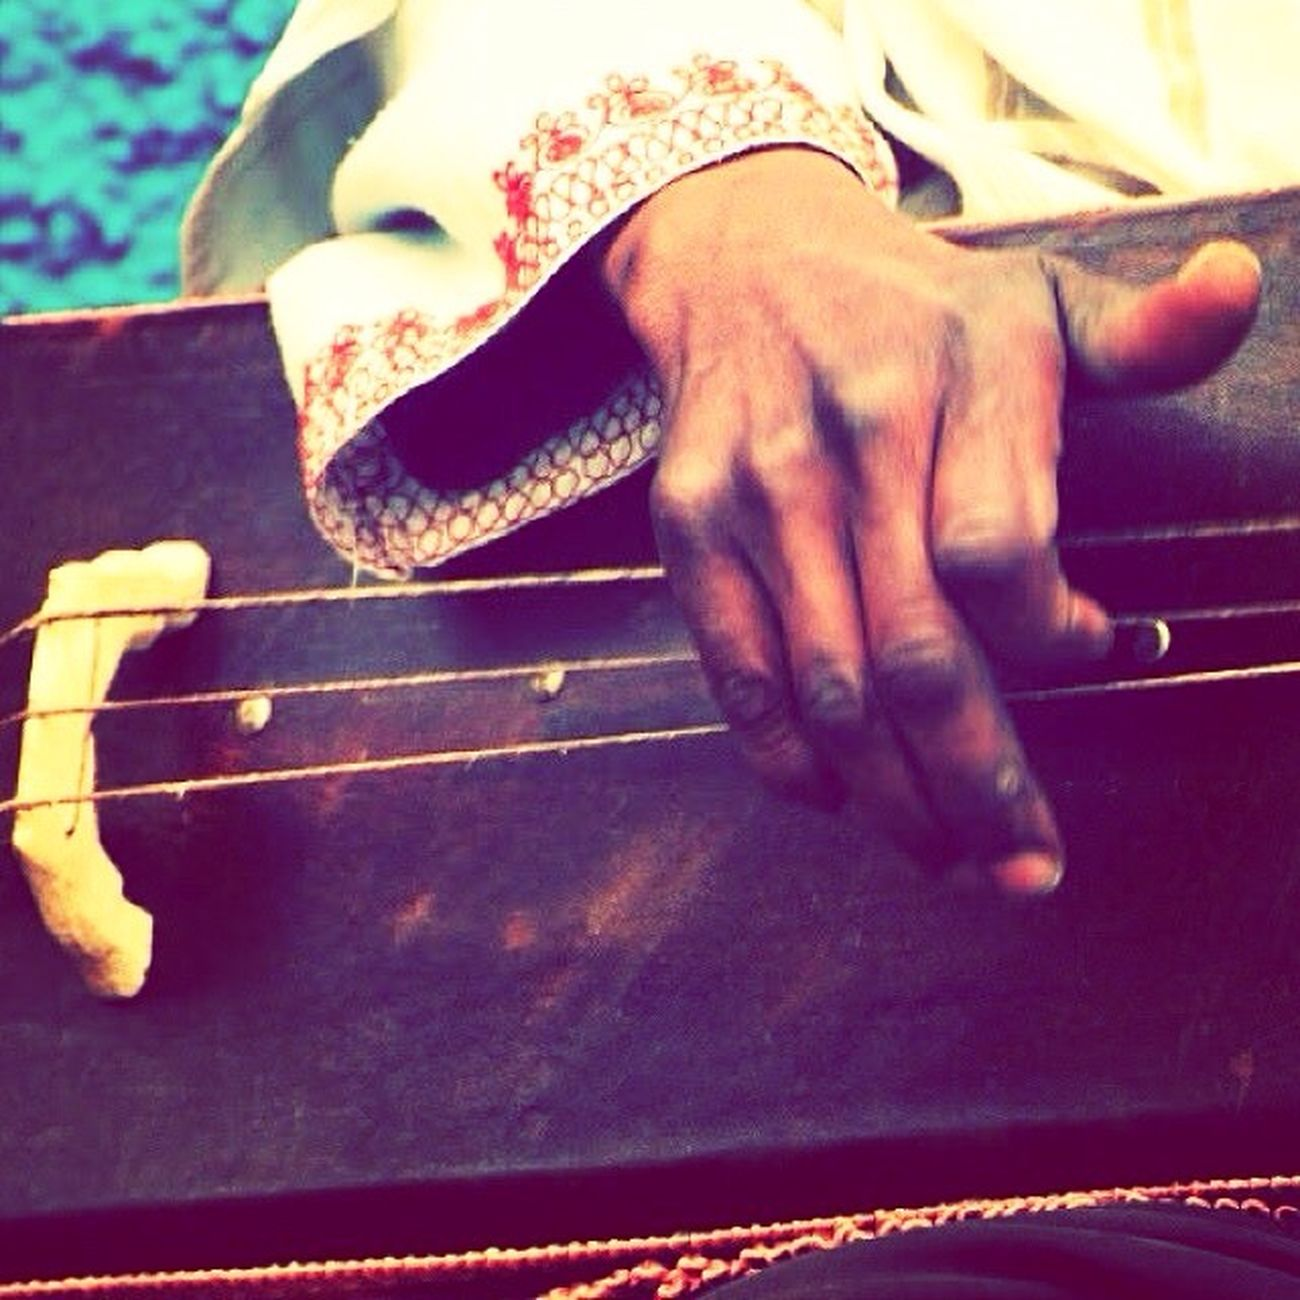 Taking Photos Enjoying Life Gnawa Music Simplelife